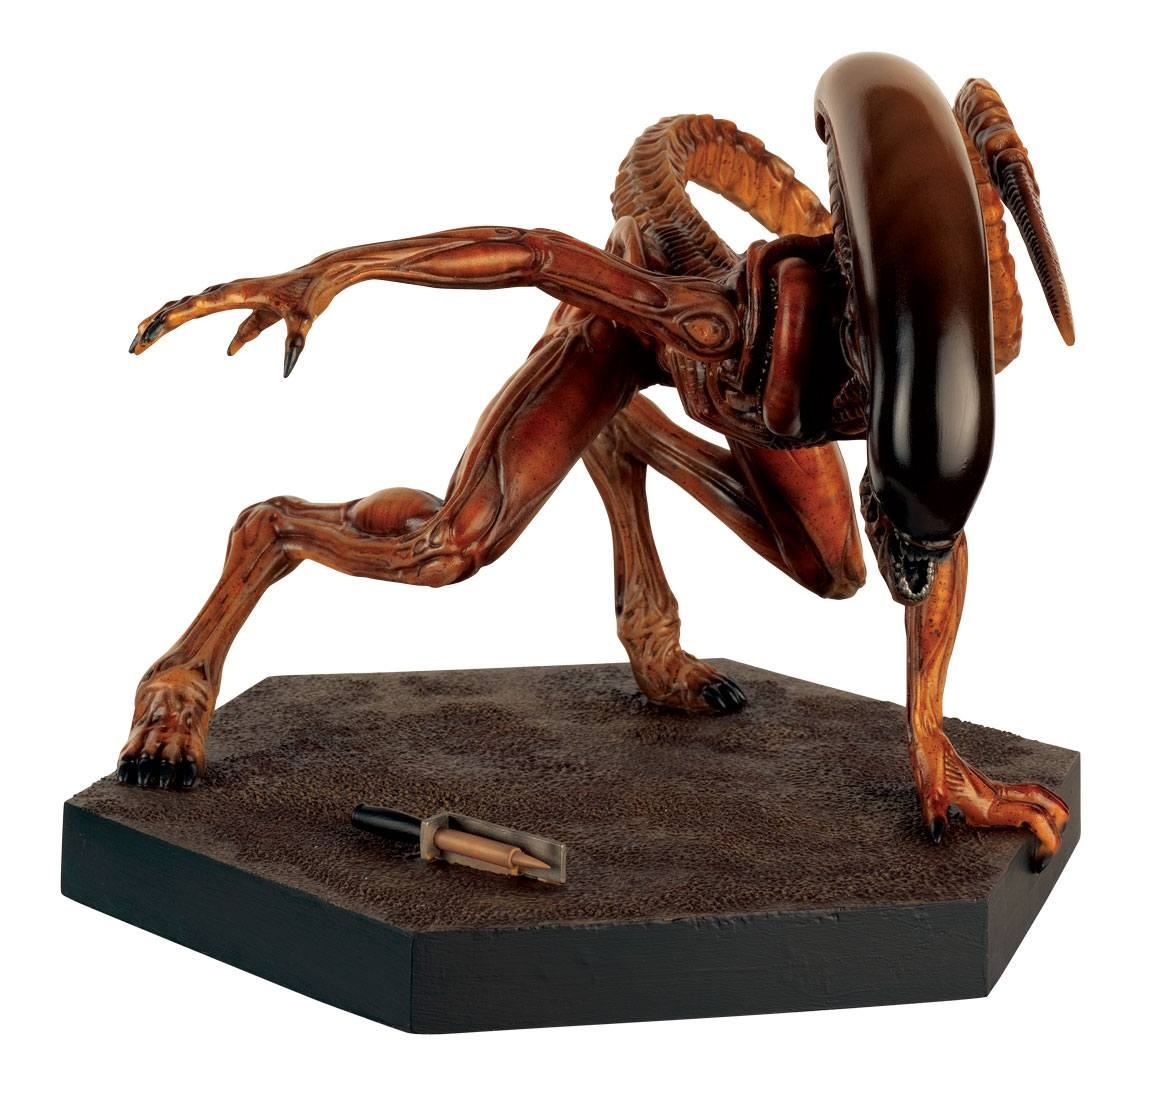 The Alien & Predator Figurine Collection Special Statue Mega Runner Xenomorph (Alien 3) 19 cm